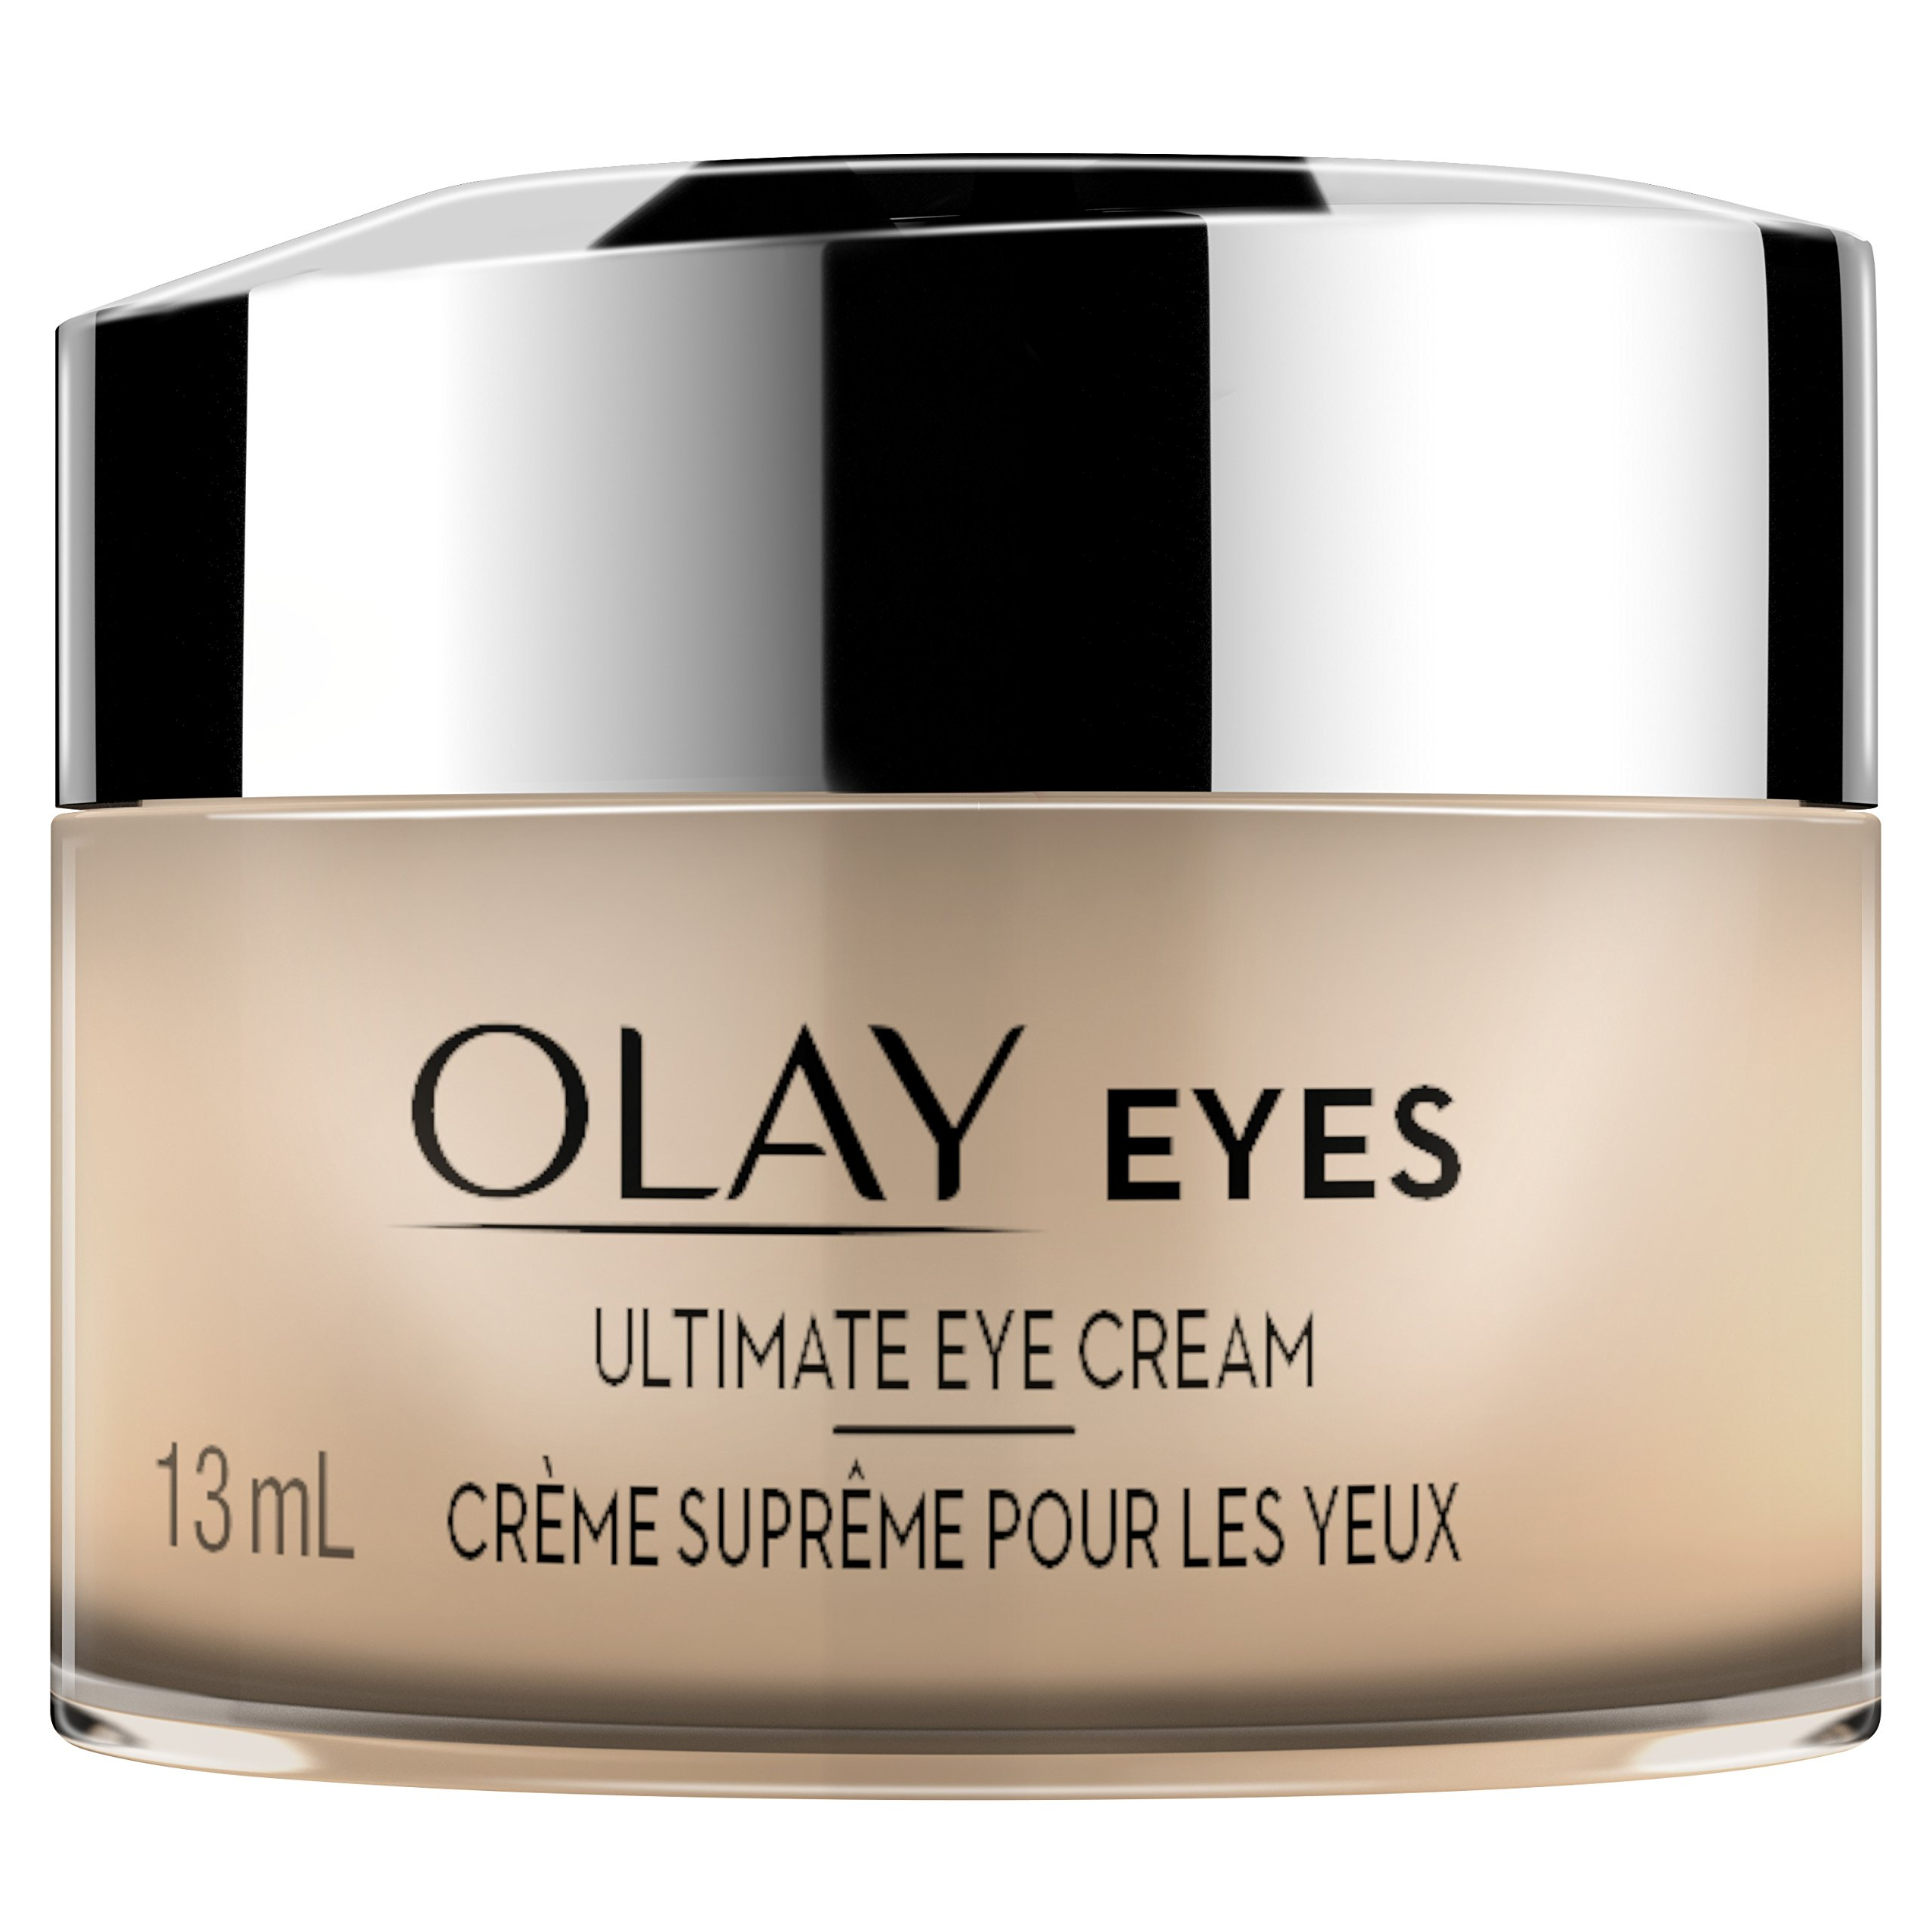 Eye Cream by Olay, Ultimate Cream for Dark Circles and Puffiness